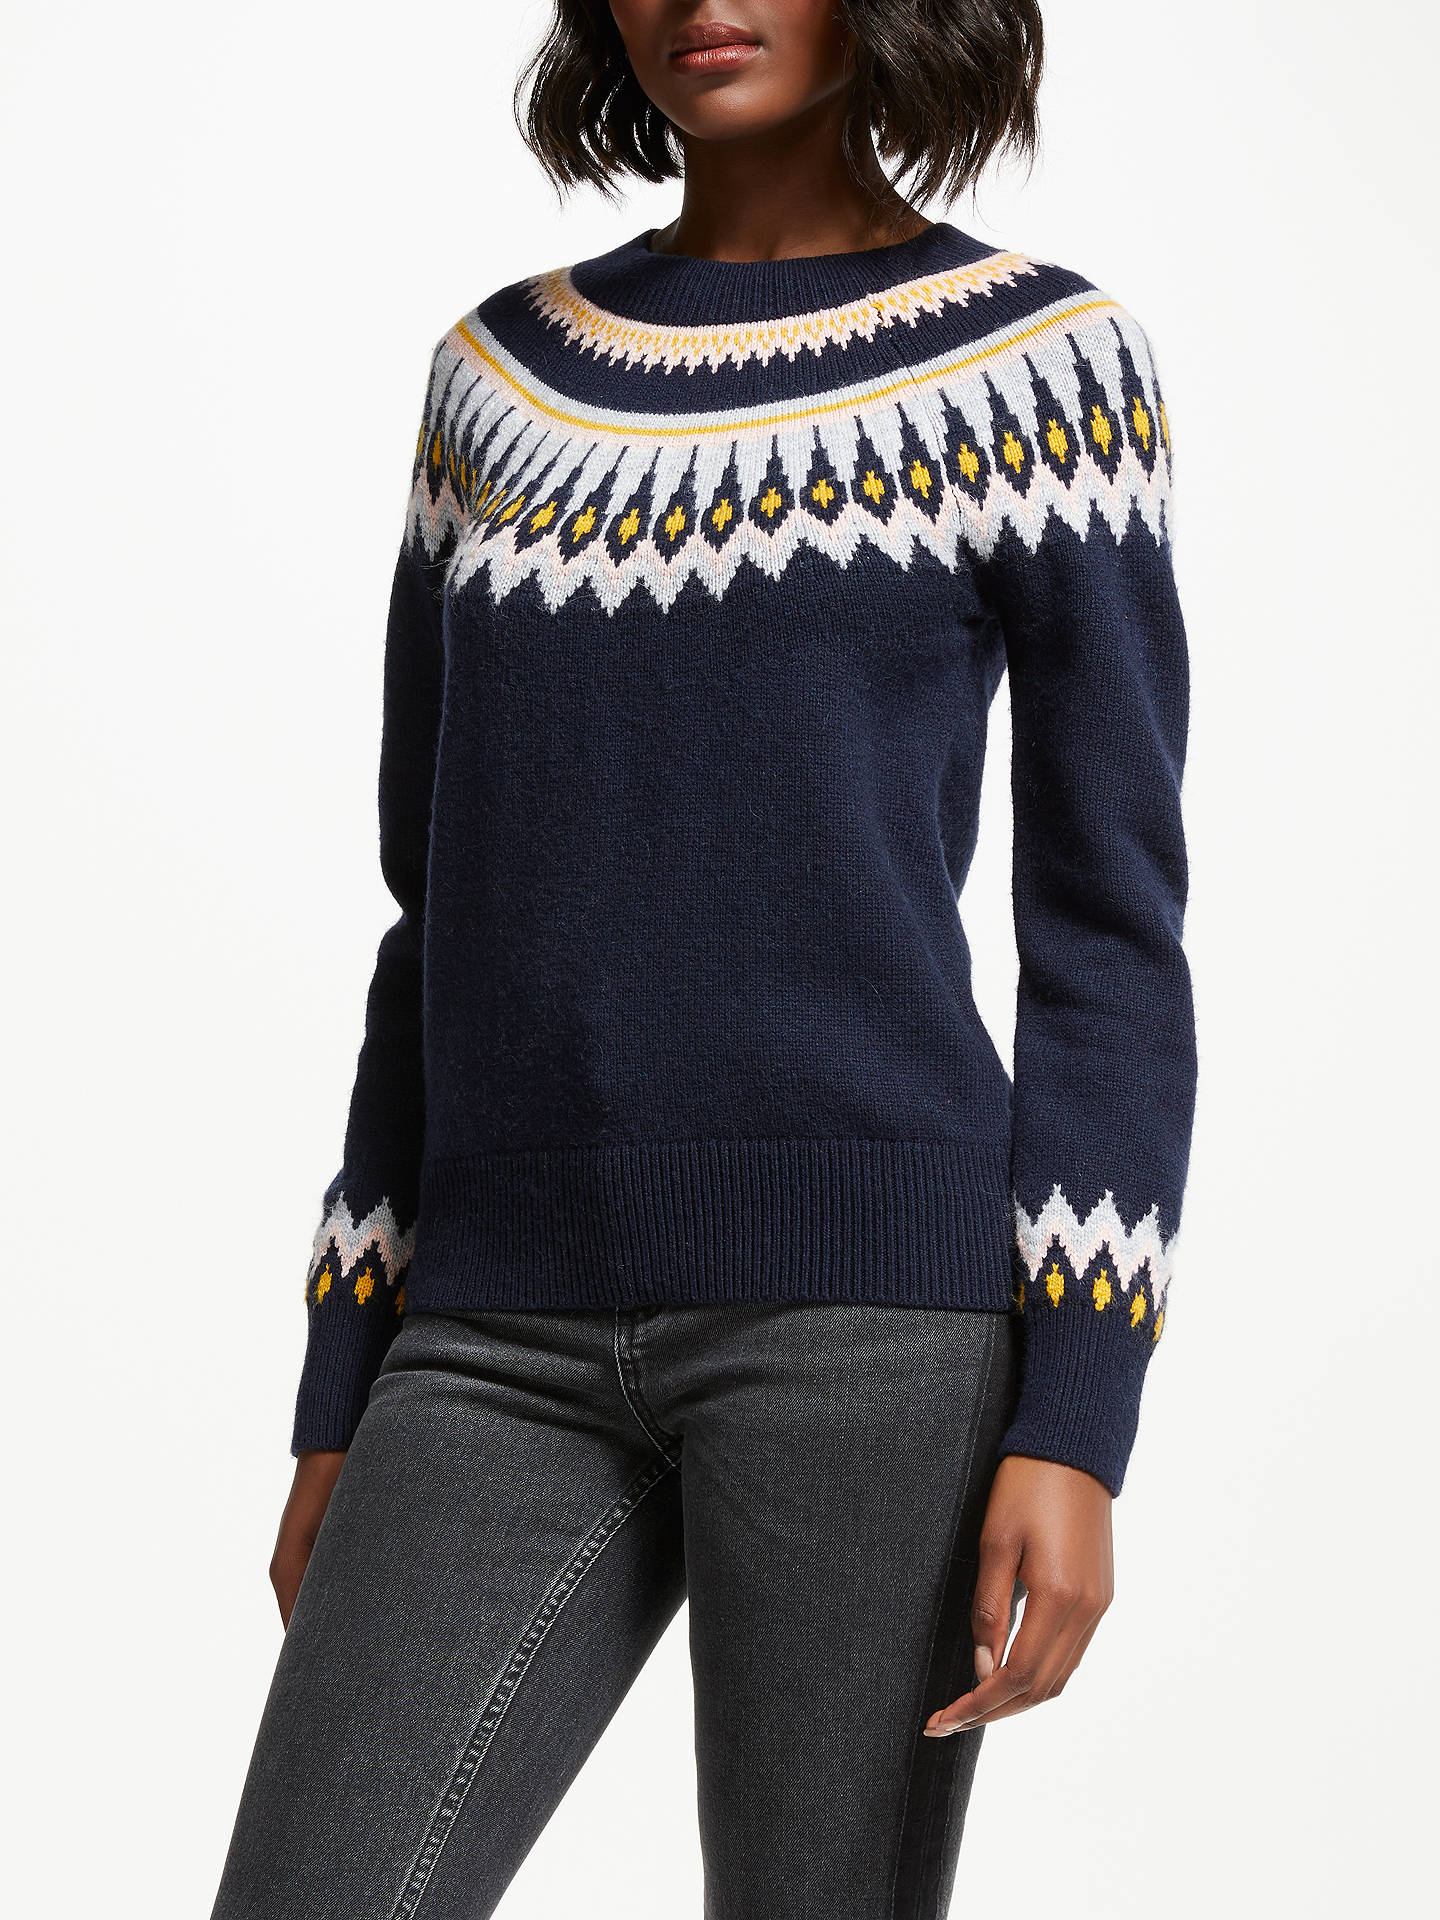 Boden Agnes Fair Isle Jumper at John Lewis & Partners